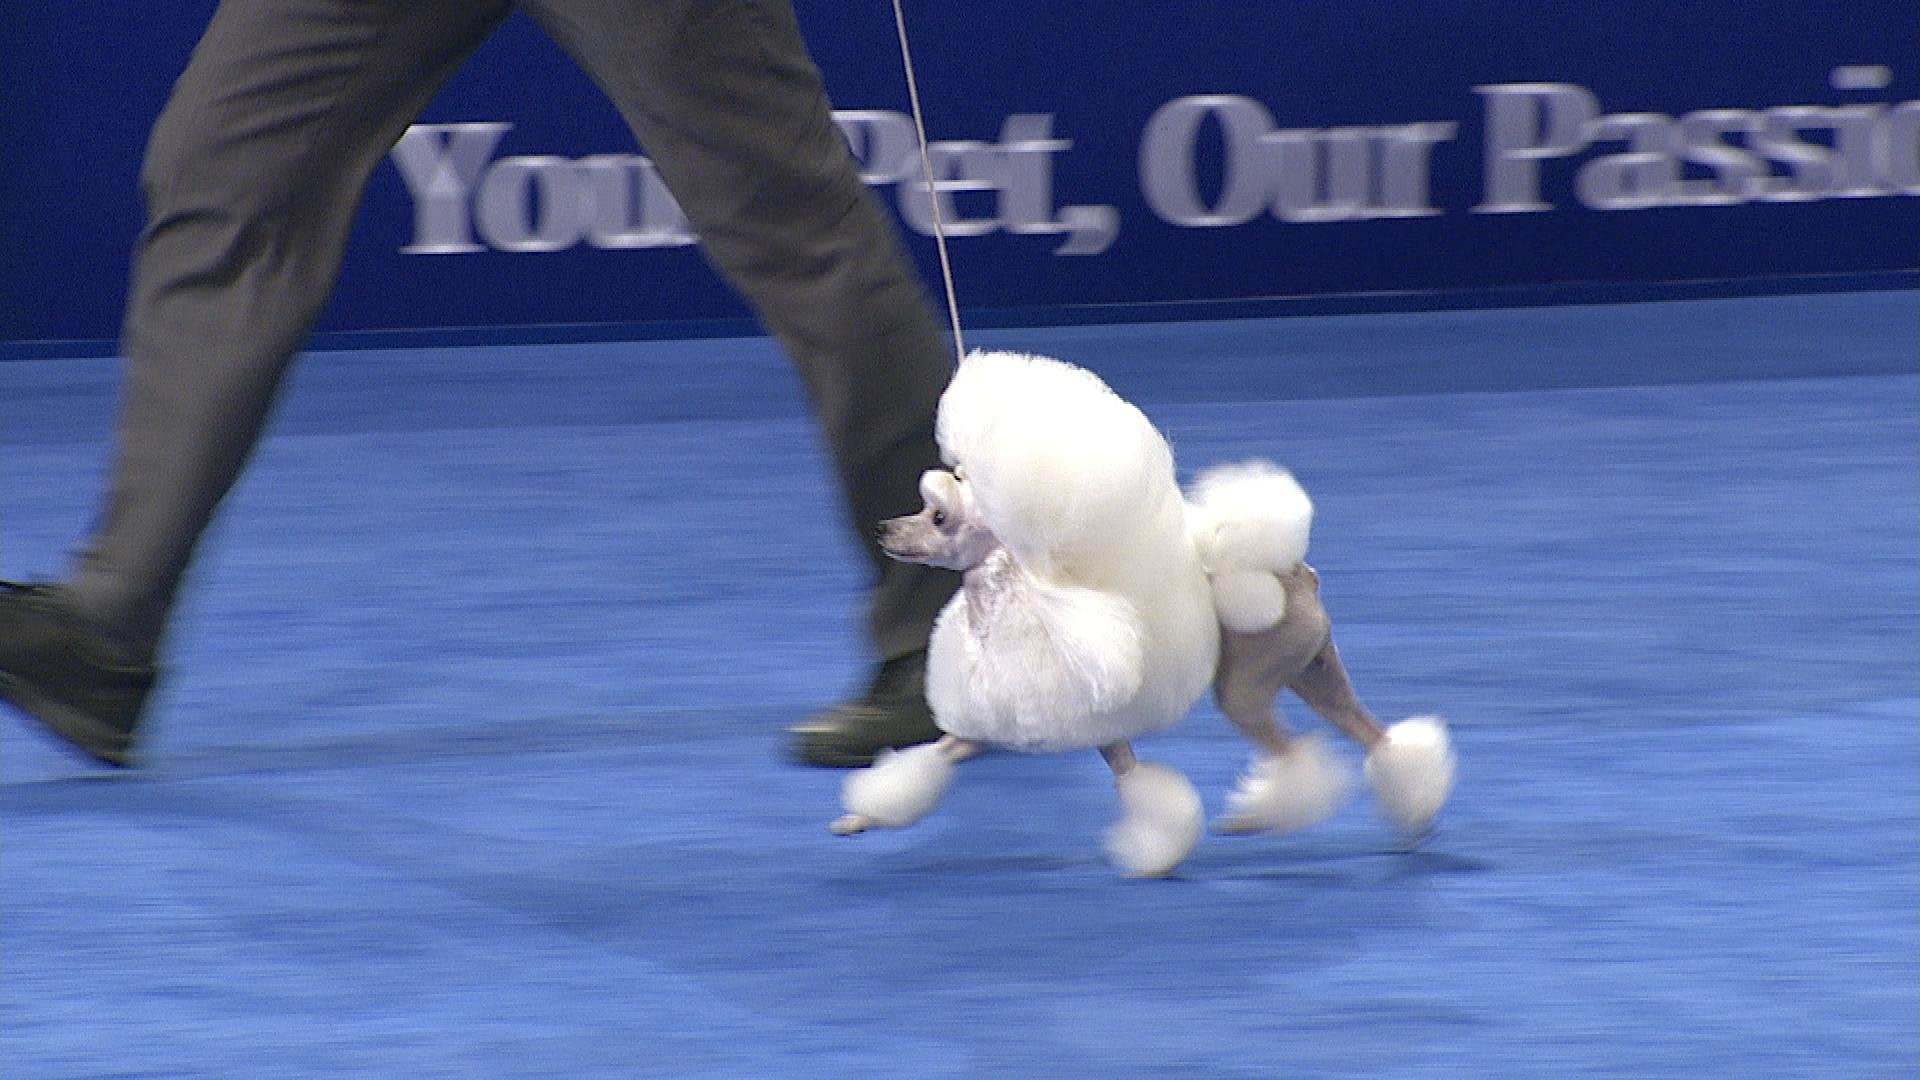 Toy Poodle 2018 National Dog Show Toy Group Nbc Sports